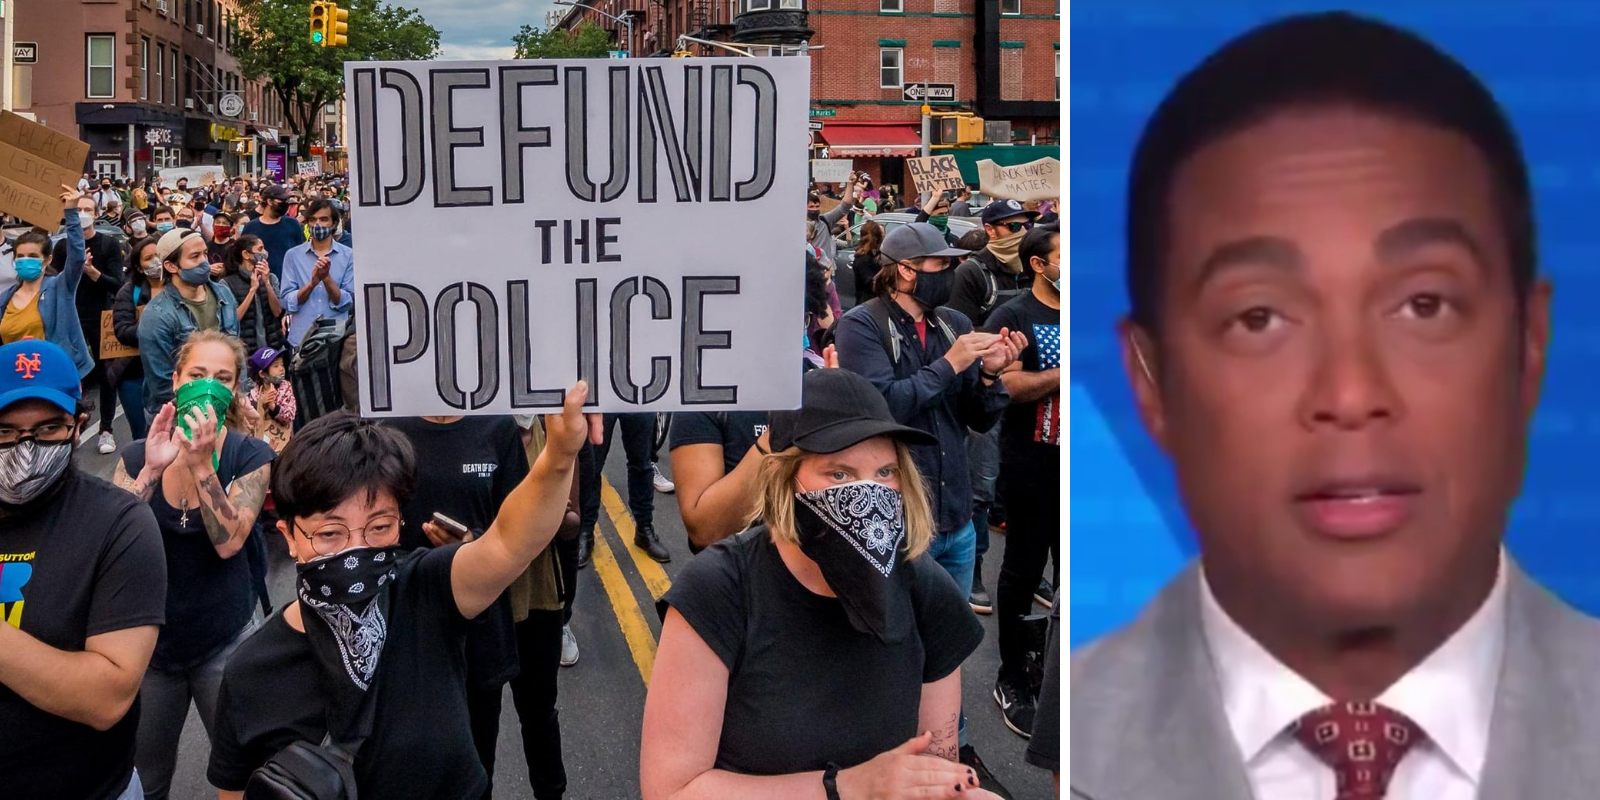 WATCH: Don Lemon admits that the 'Mostly Peaceful Protests' and 'Defund the Police' narratives are failing